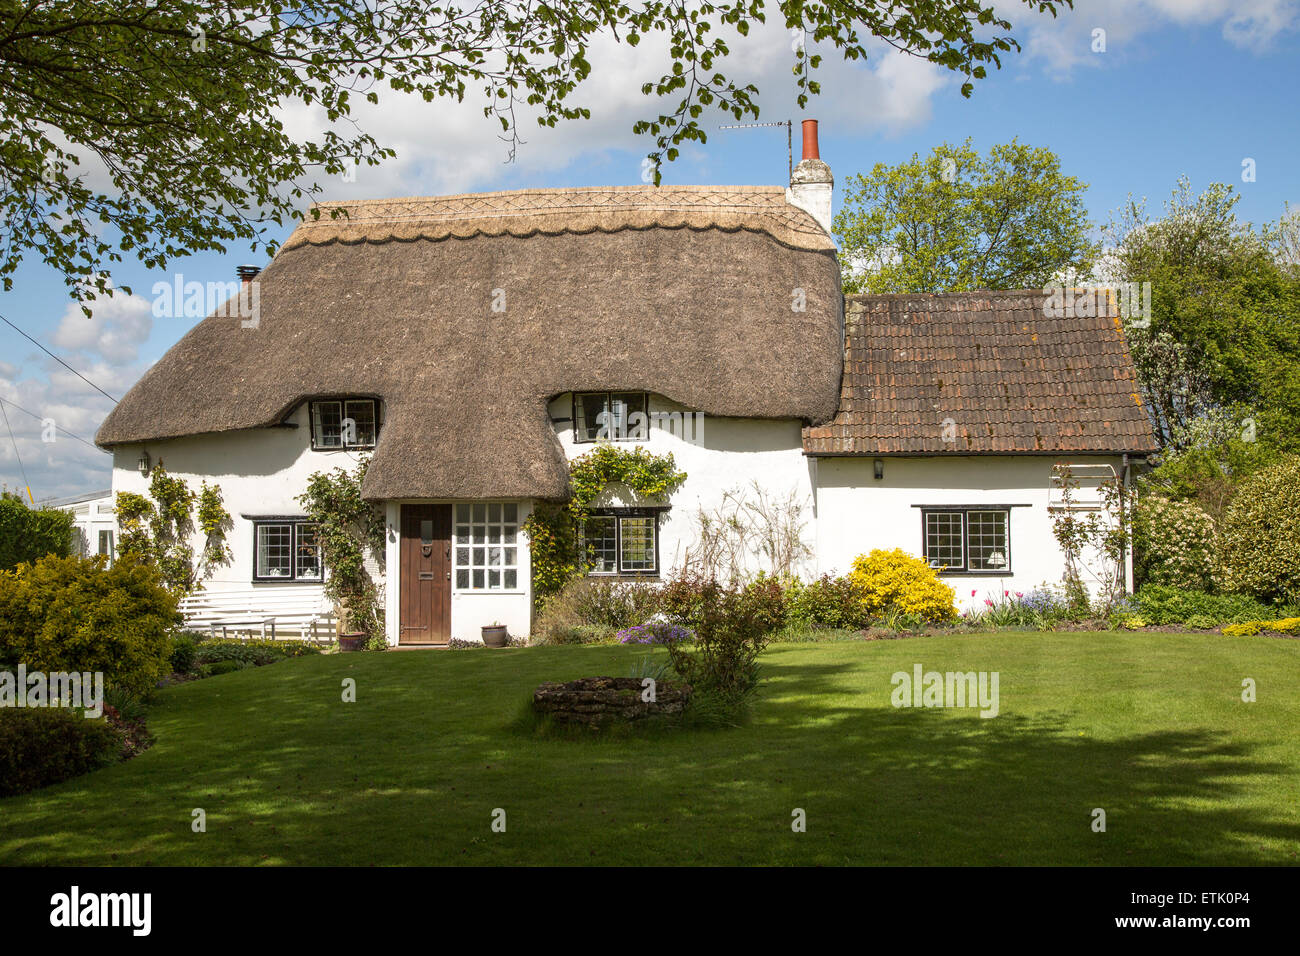 Thatched attractive country cottage, Cherhill, Wiltshire, England, UK - Stock Image